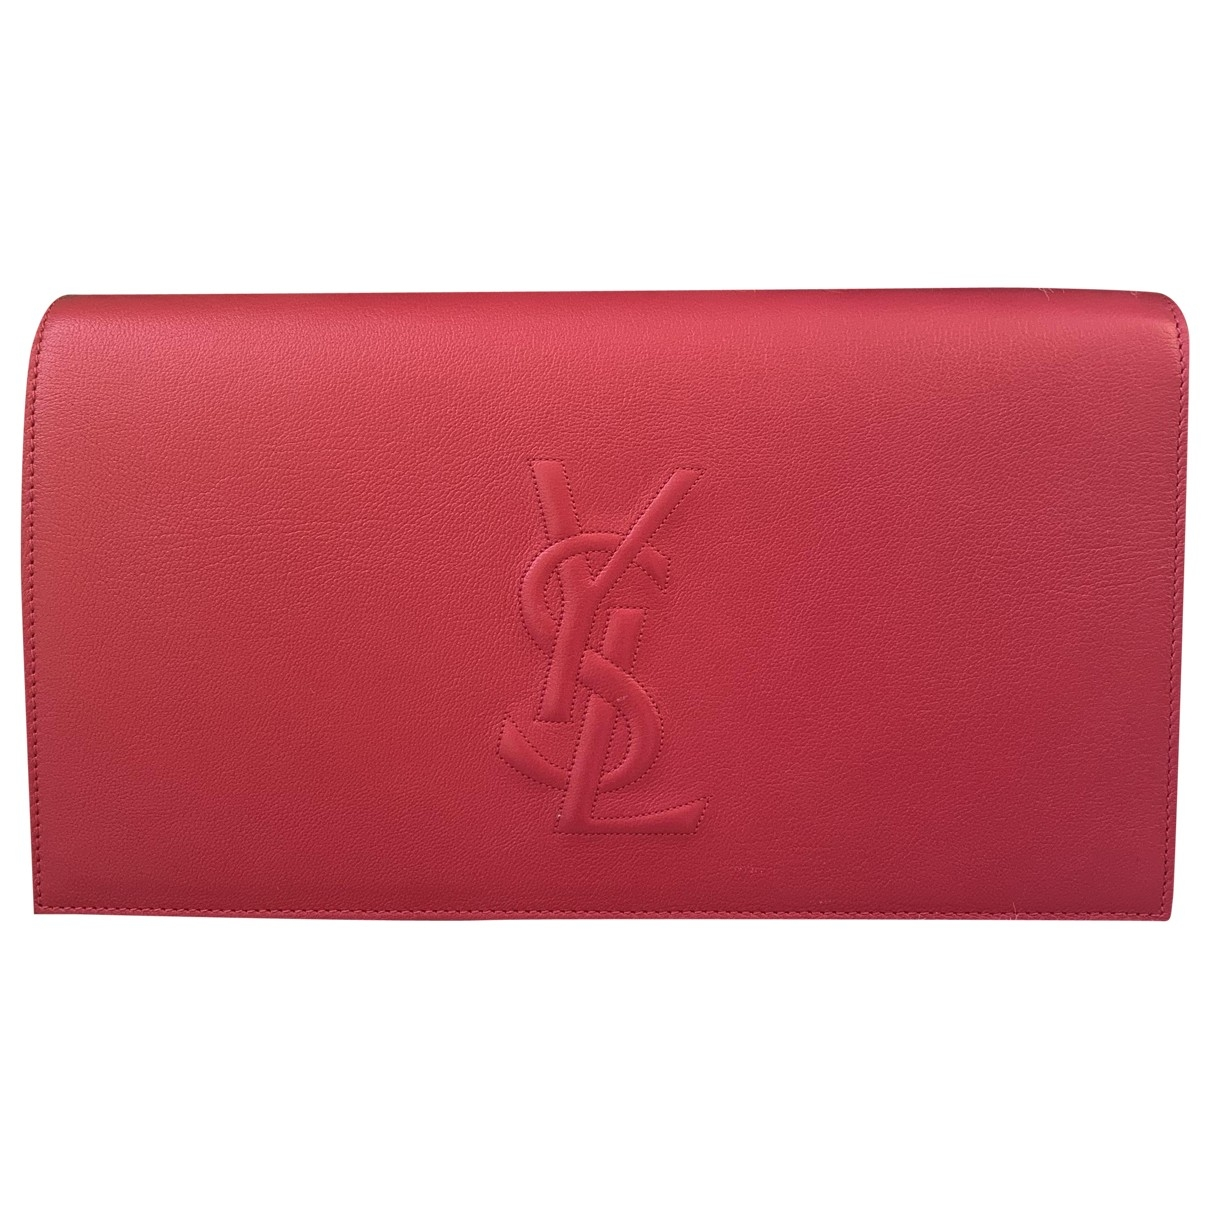 Yves Saint Laurent Belle de Jour Clutch in  Rot Leder